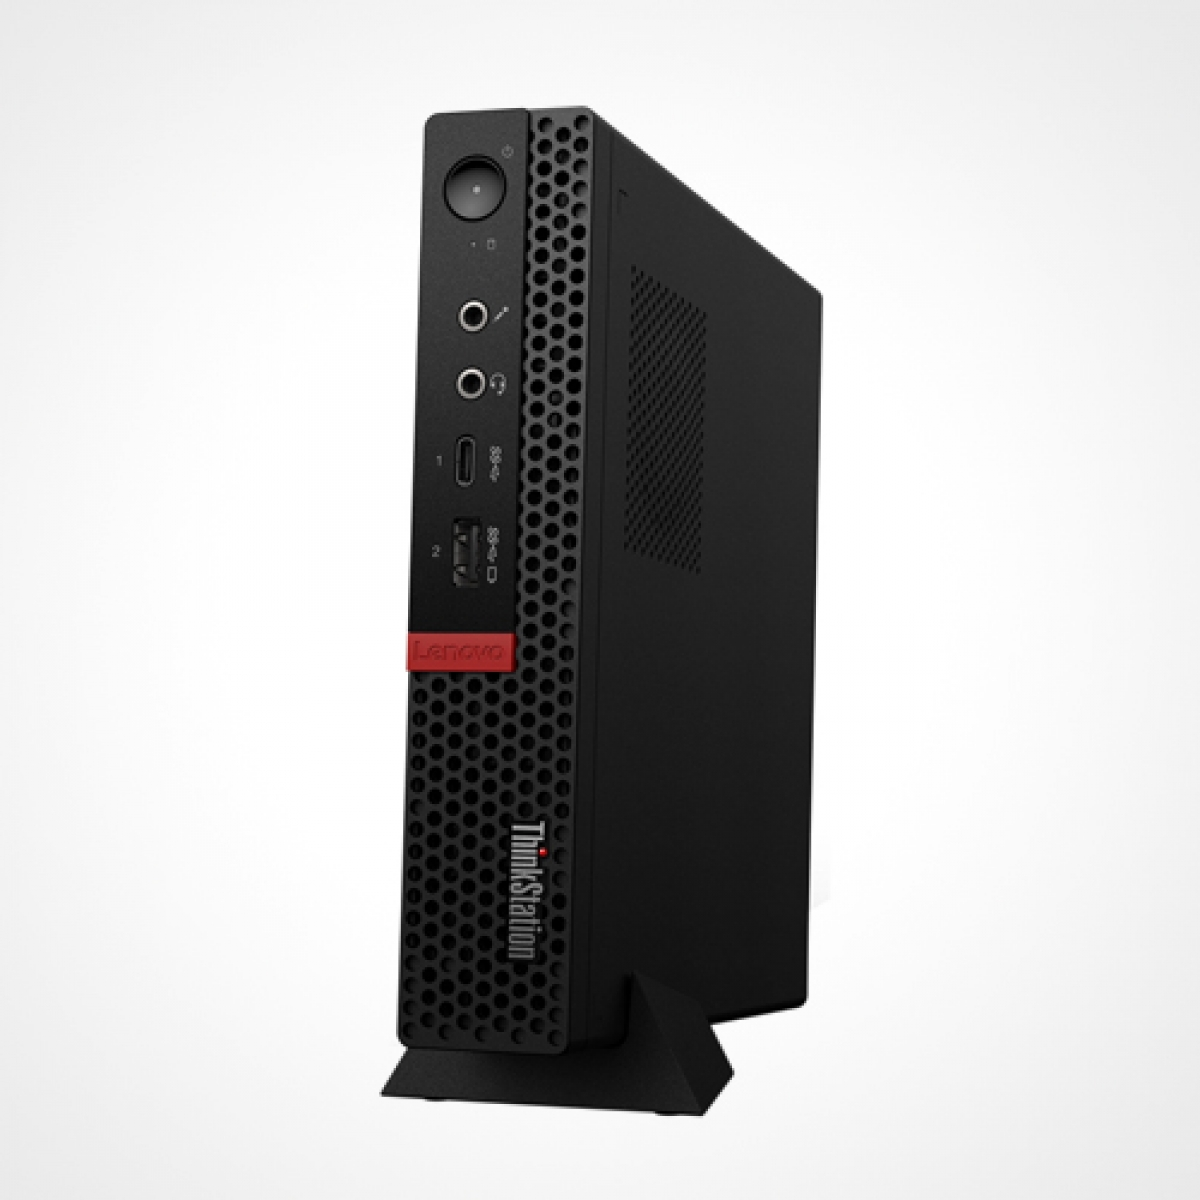 ThinkStation P330 Tiny